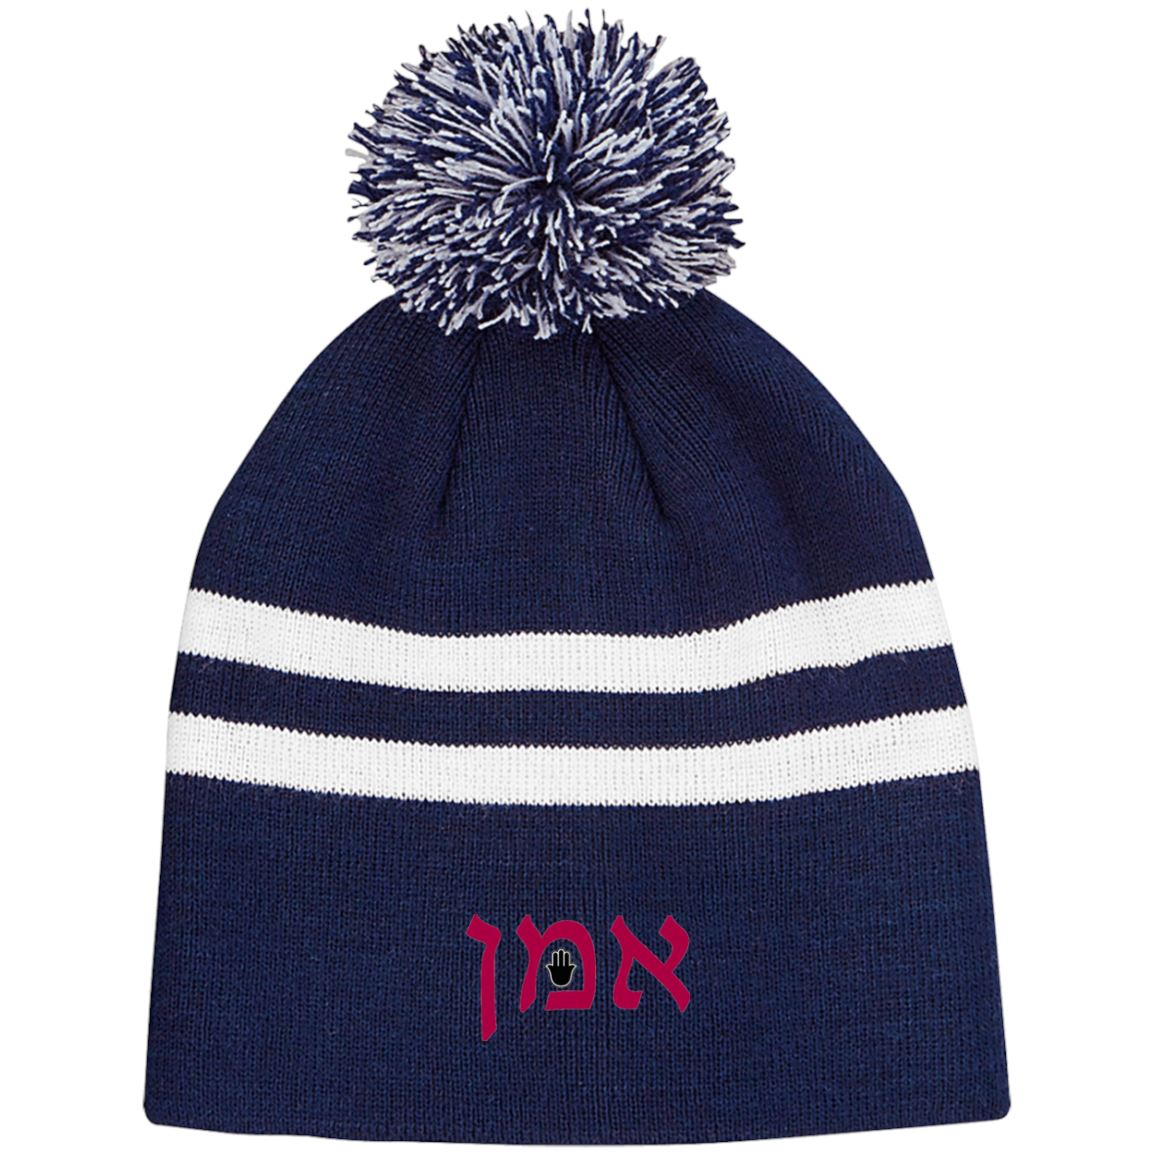 Amen Hebrew Embroidered Knit Fashion Pom Beanie Hats Hats Maroon/Black One Size